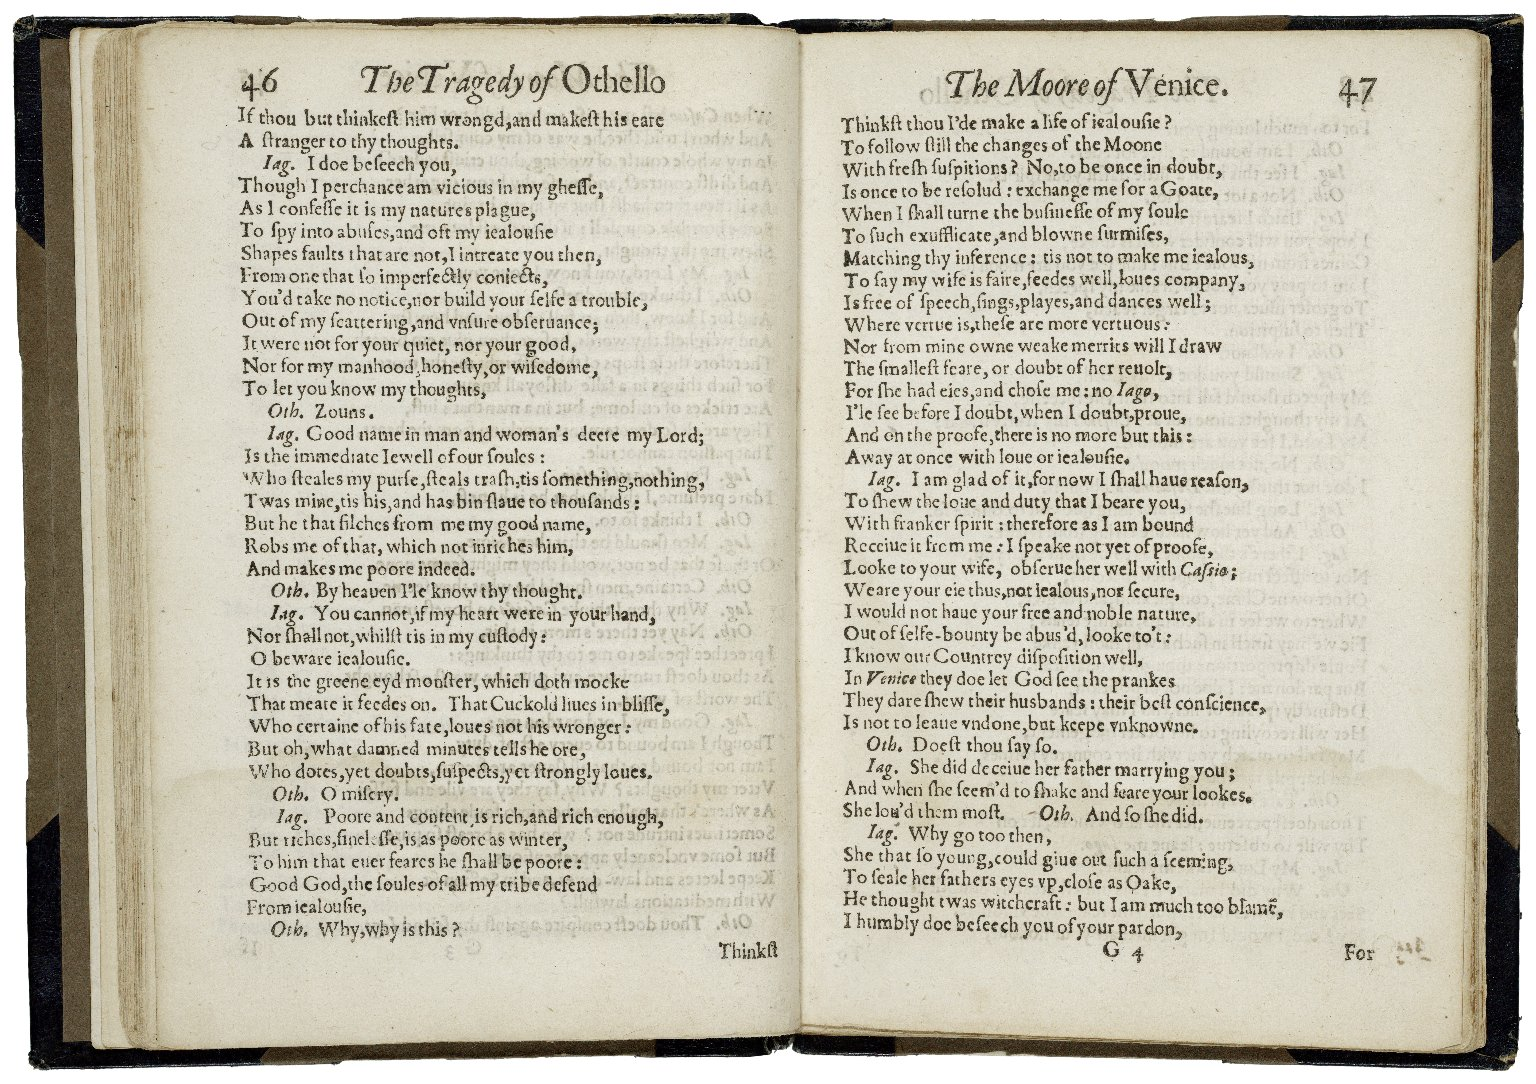 [Othello] The tragœdy of Othello, the Moore of Venice. As it hath beene diuerse times acted at the Globe, and at the Black-Friers, by his Maiesties Seruants.